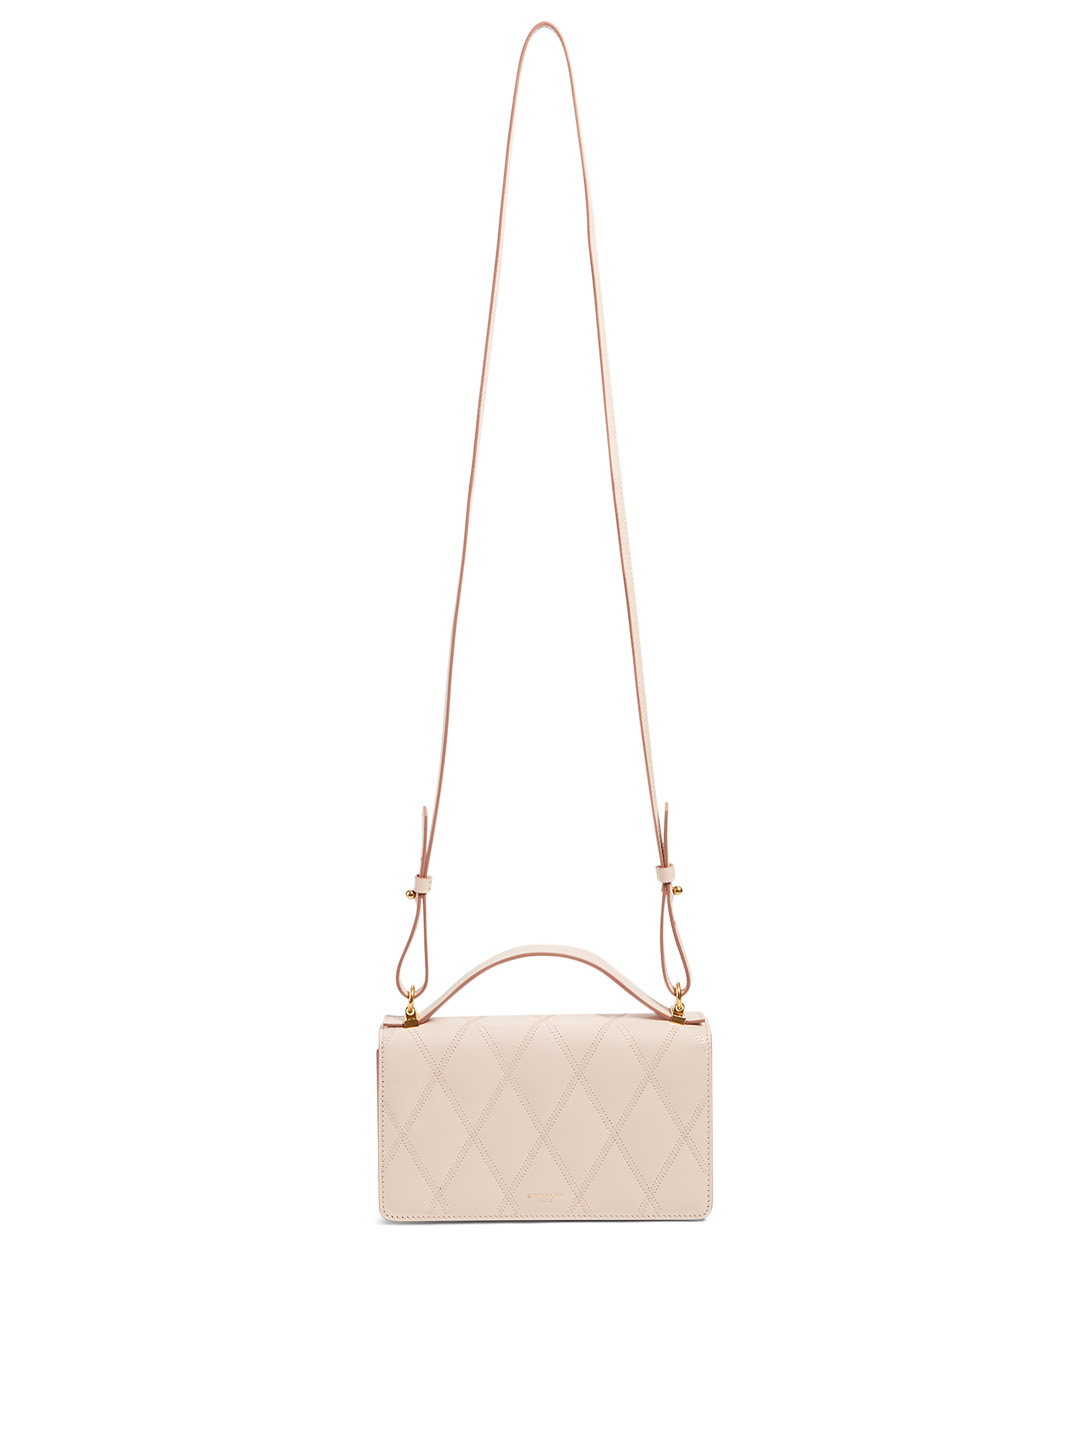 GIVENCHY GV3 Leather Mini Bag Women's Pink